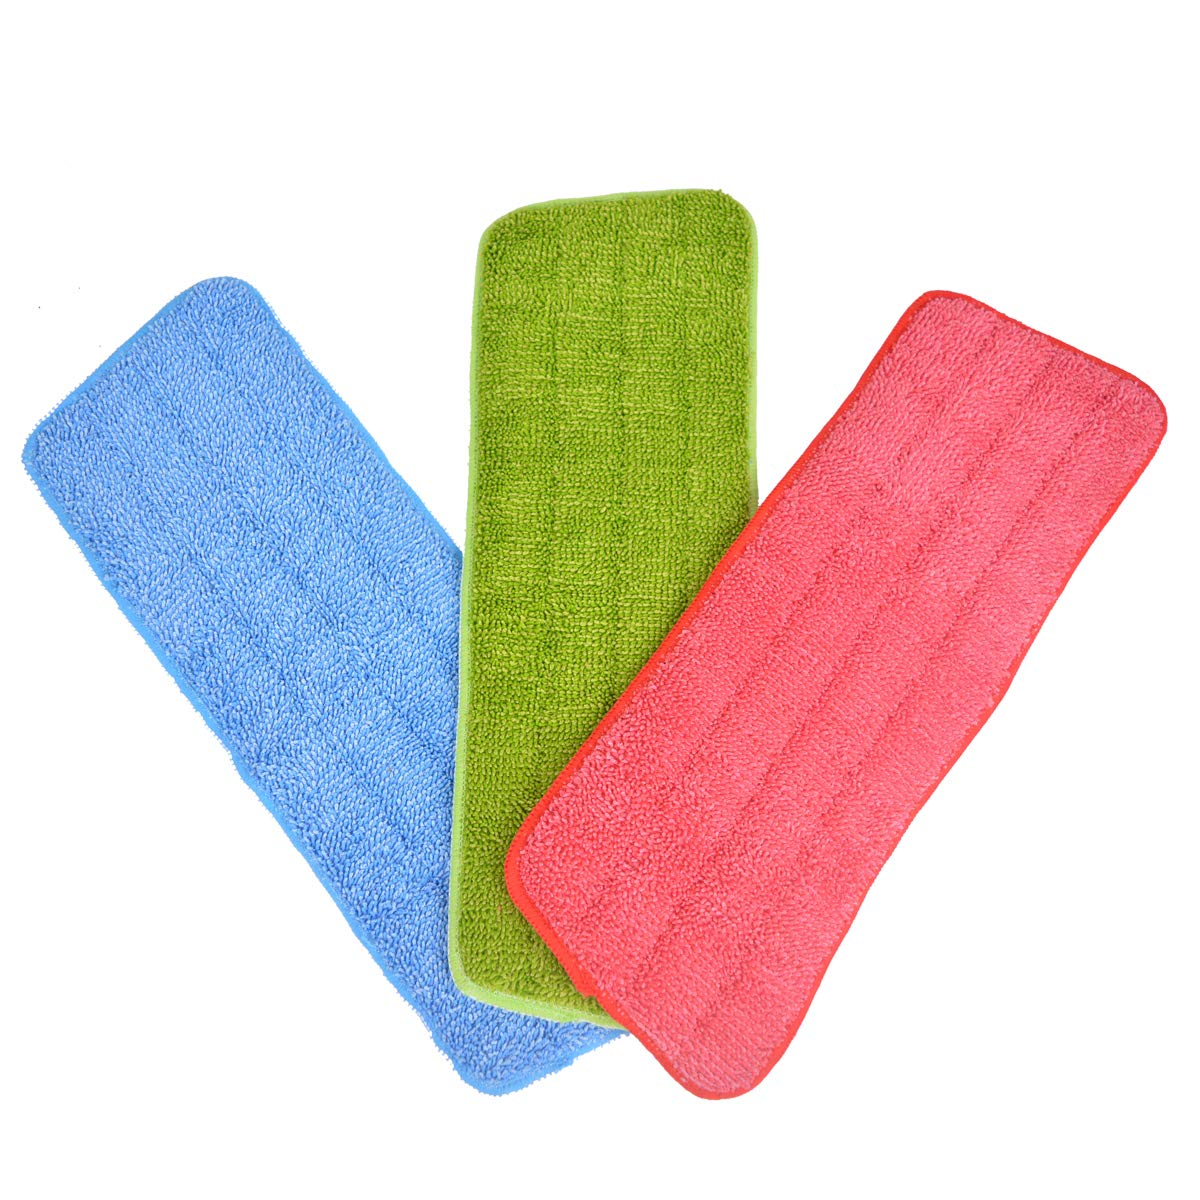 Baitaihem 3 Pack Mop Cleaning Pads Microfiber Replacement Mop Pad Fit Spray Mops /& Reveal Mops Washable 16.54inchX5.51inch